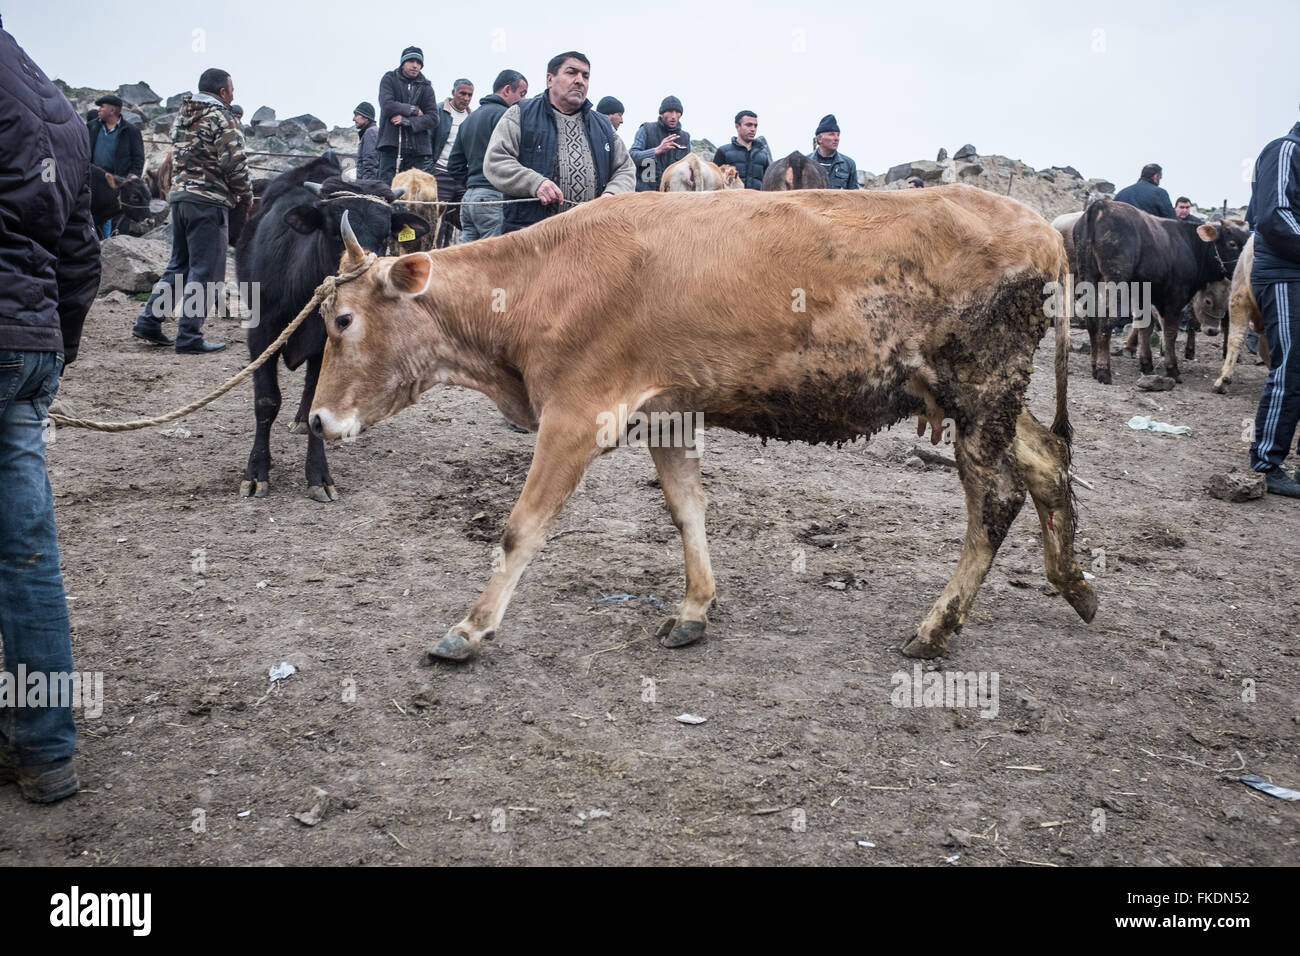 Scene from an open air animal market in Georgia close to the Azerbaijan border. A cow is dragged through a group - Stock Image